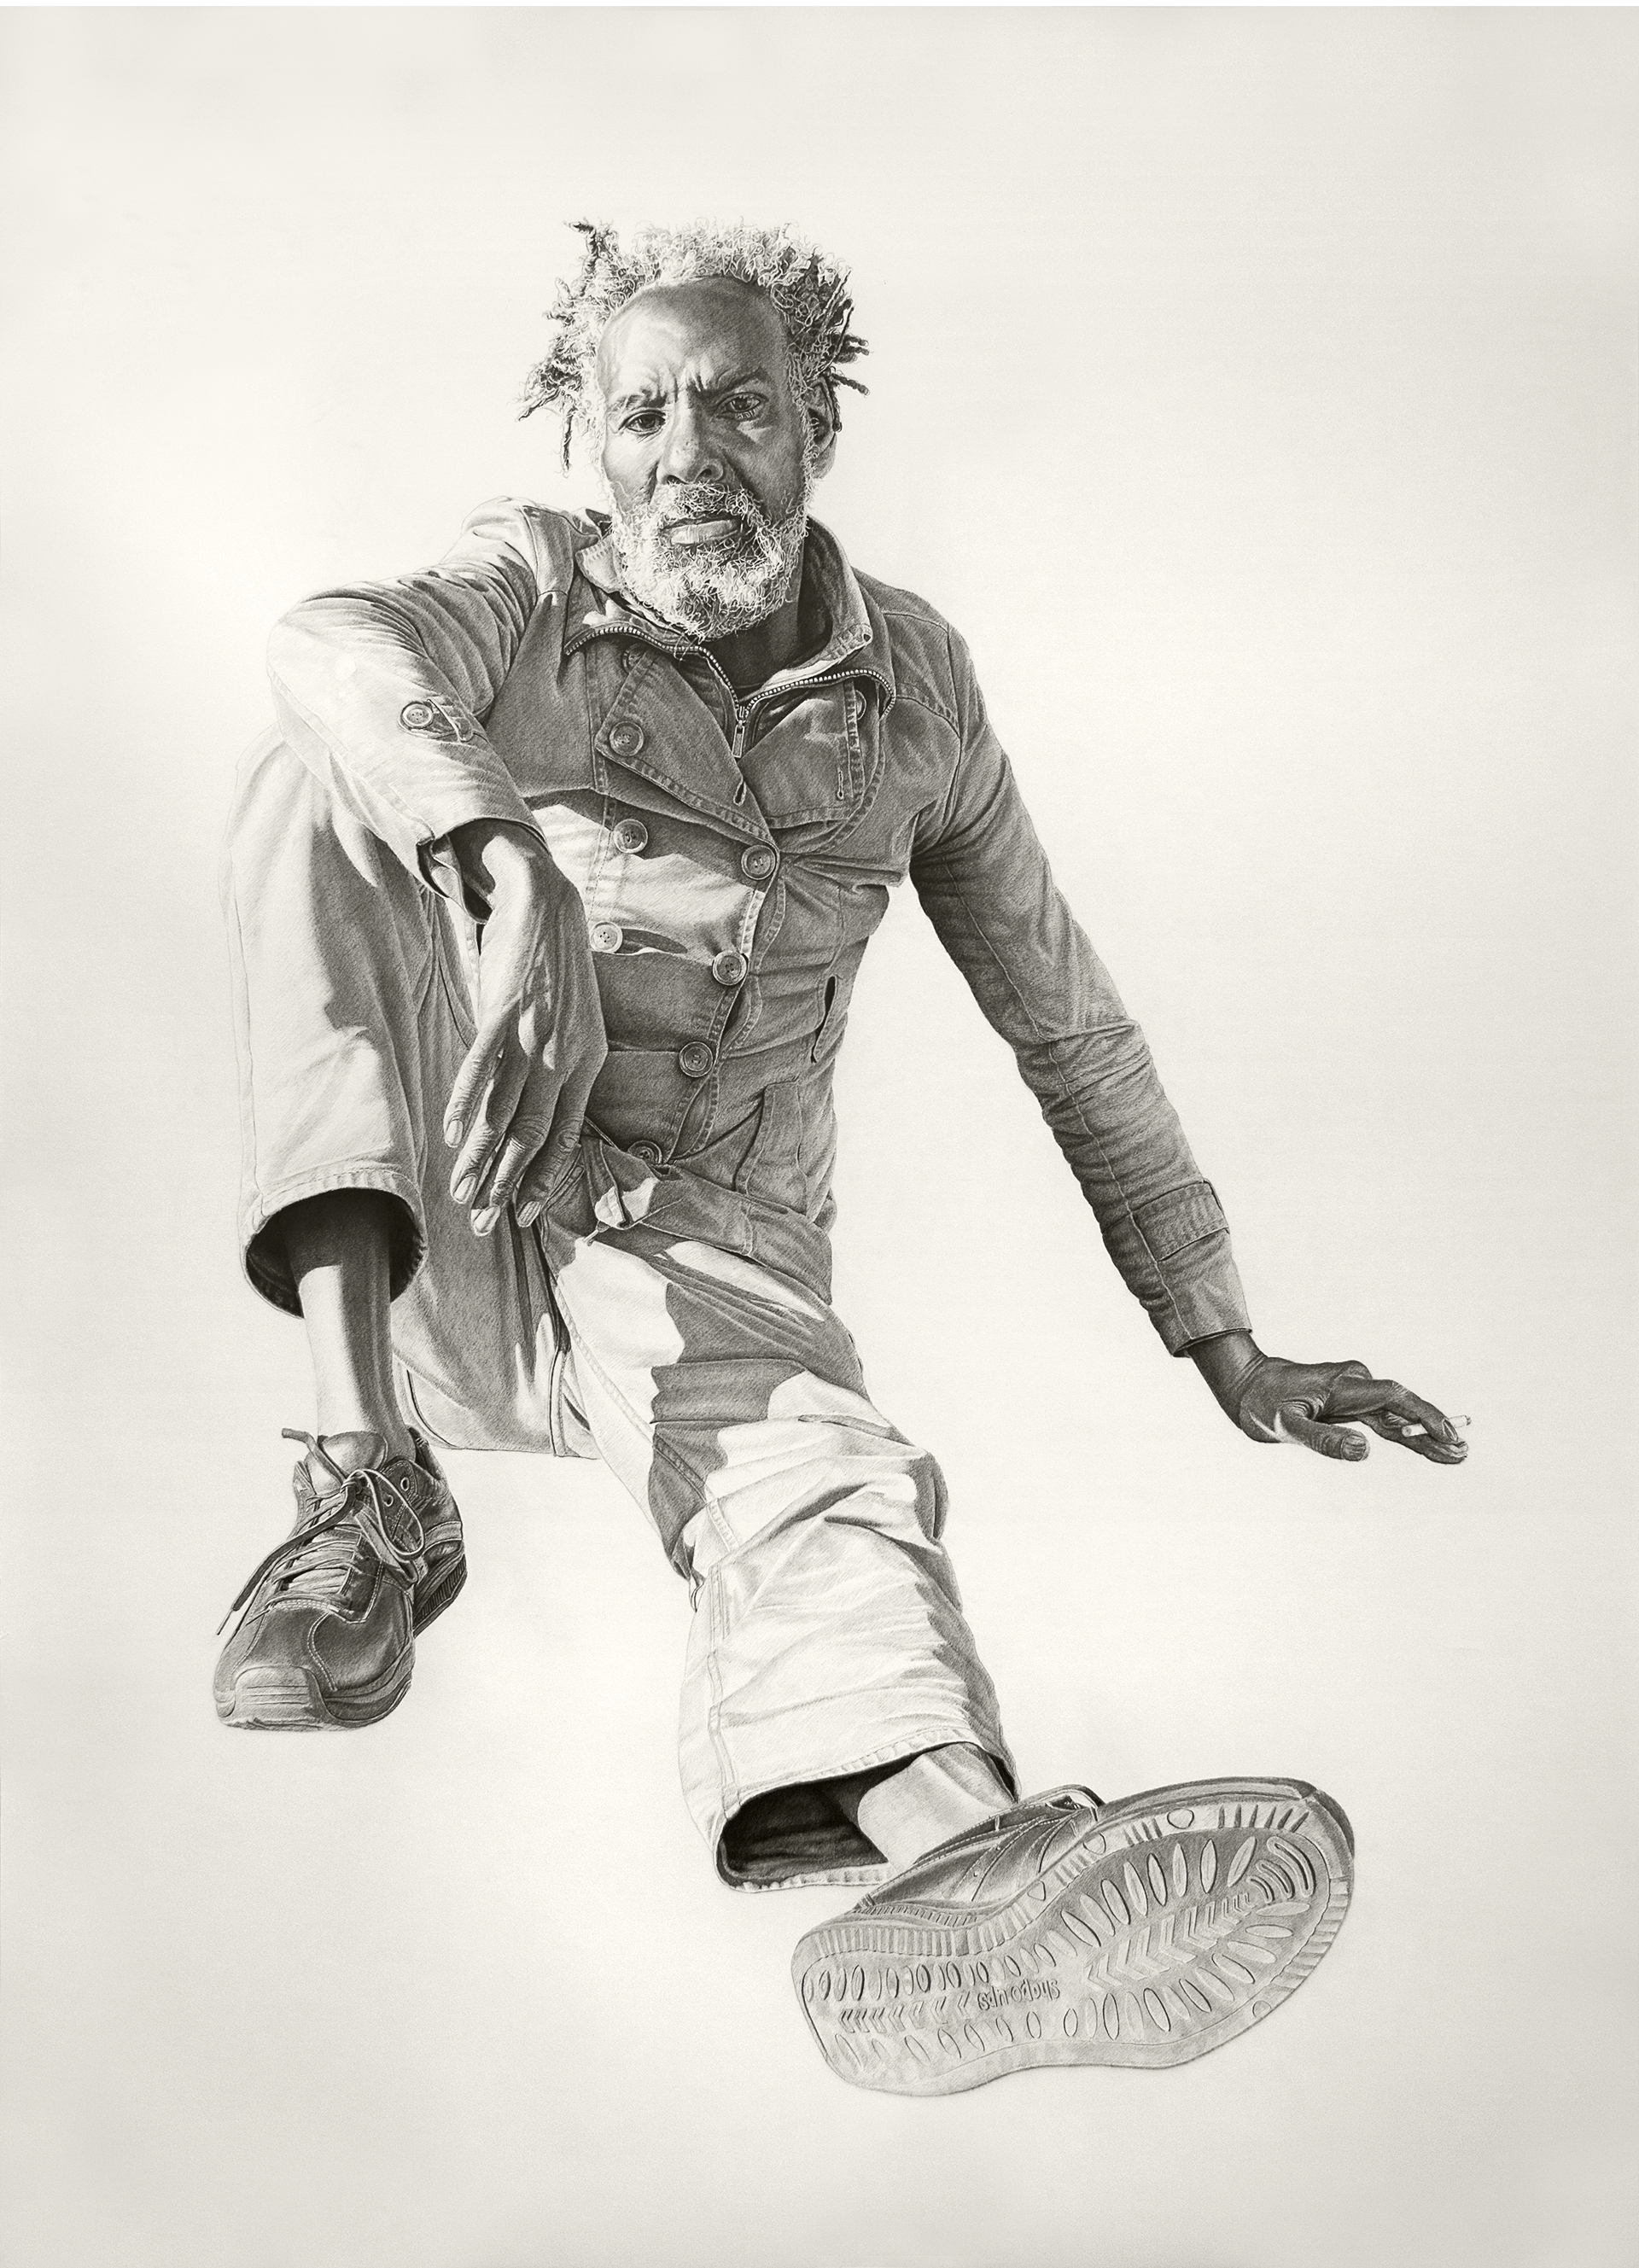 Eugene #4, 52x72in, charcoal & graphite on paper, 2014